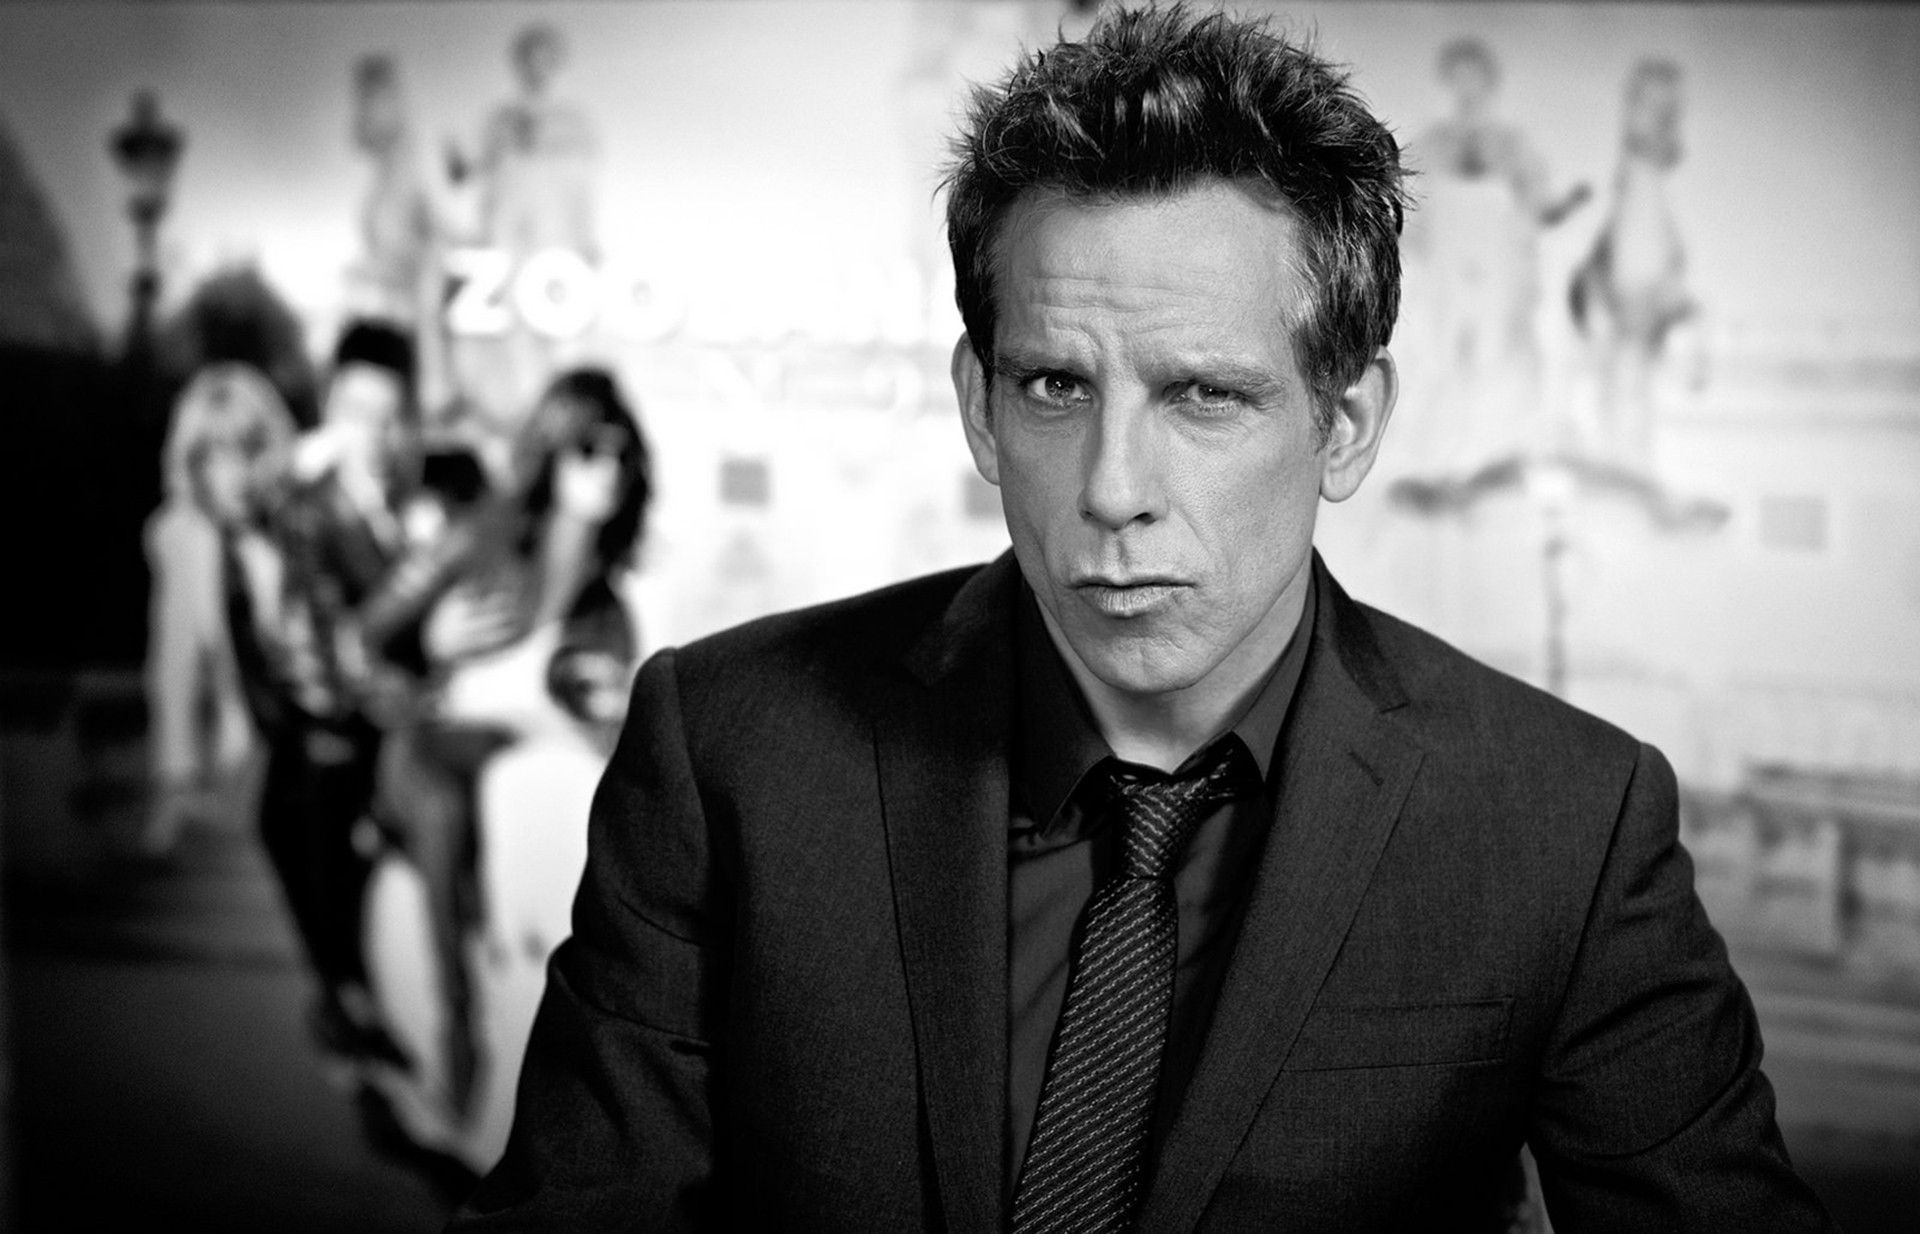 2048x1152 Ben Stiller Actor Eyes 2048x1152 Resolution